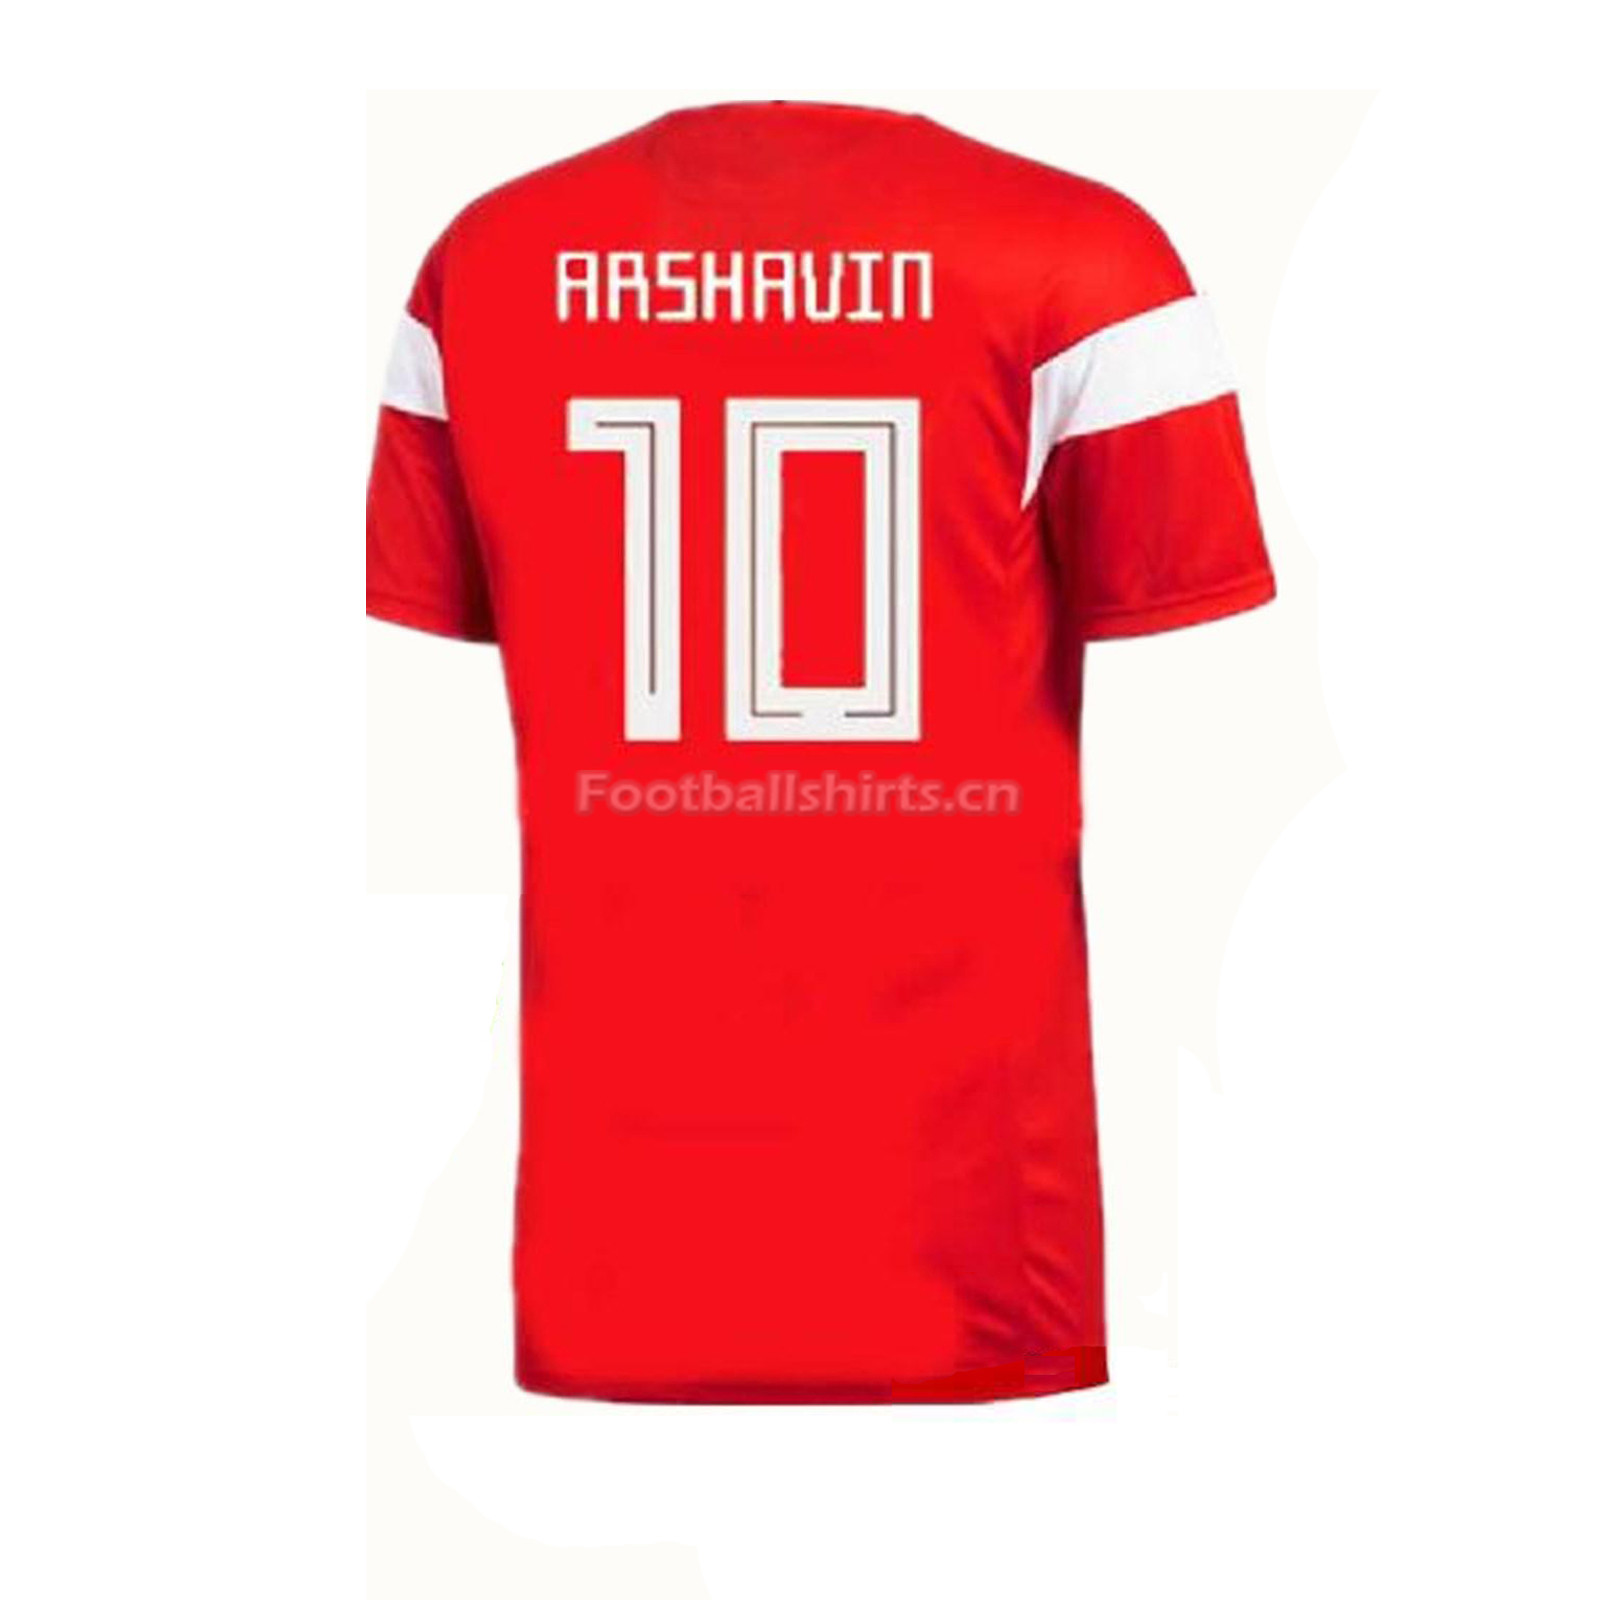 Russia 2018 World Cup Home Arshavin Soccer Jersey